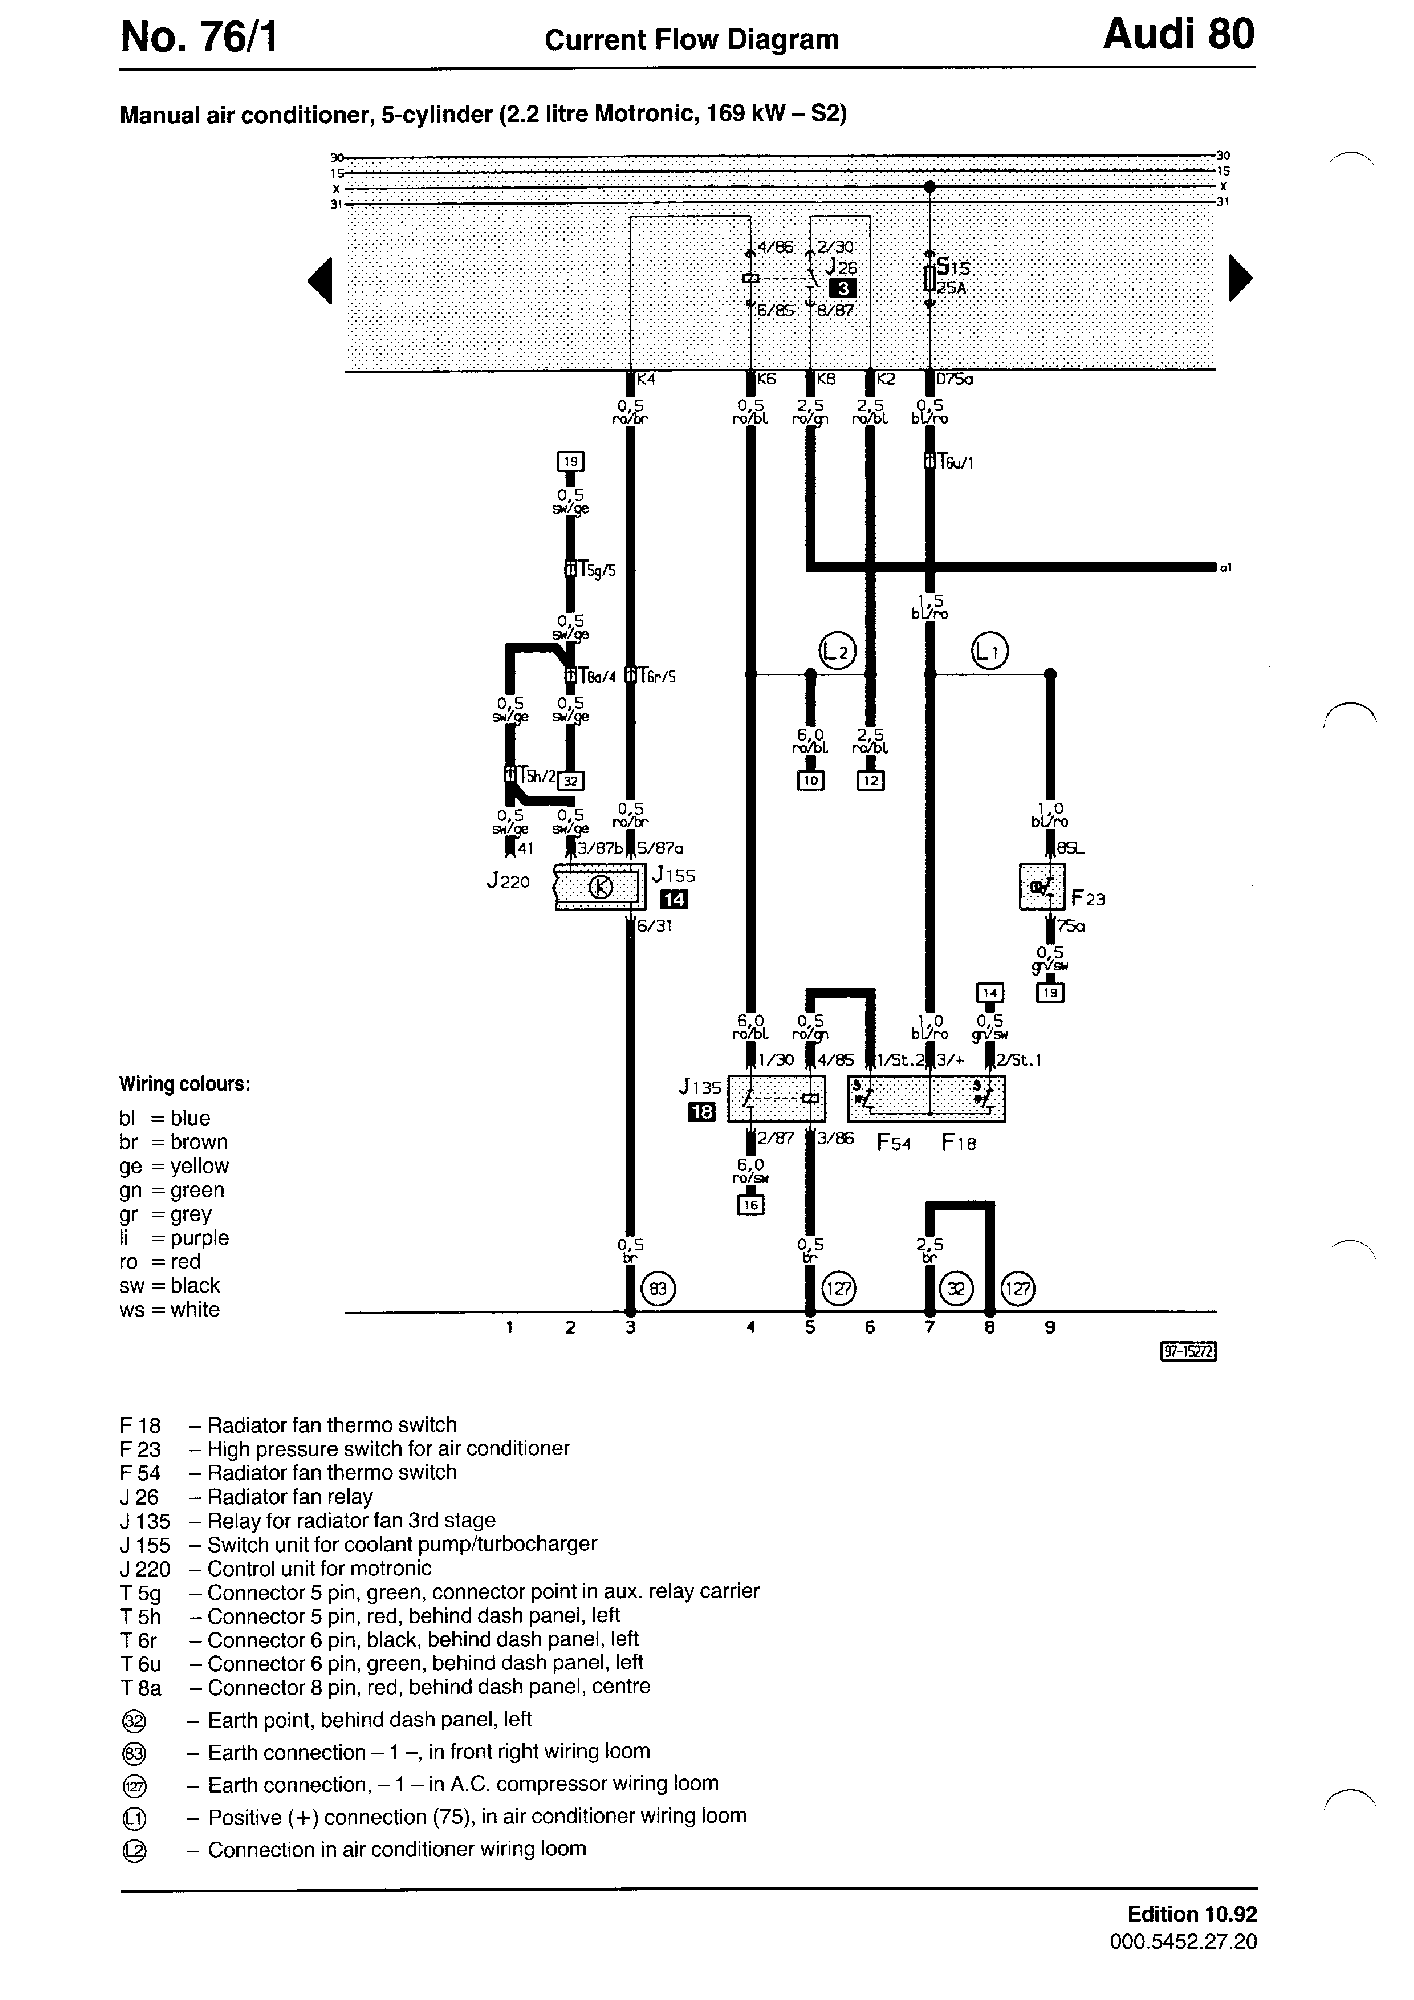 Manual Air Conditioner for ABY engine from October 1992 (c